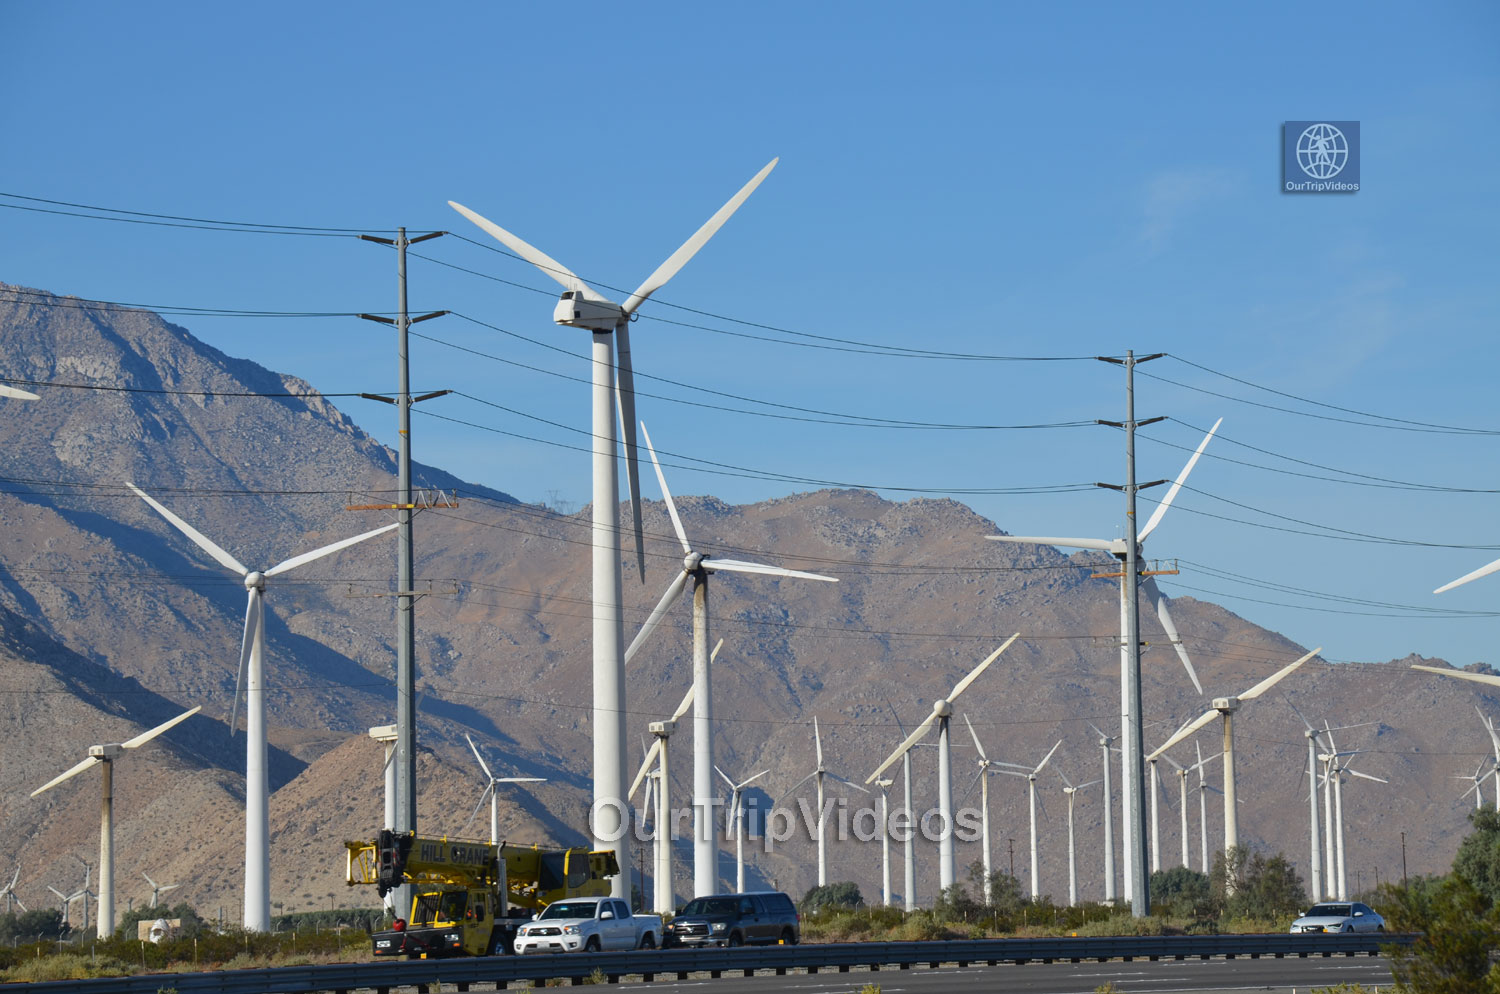 Windmill Tour, Palm Springs, CA, USA - Picture 10 of 25